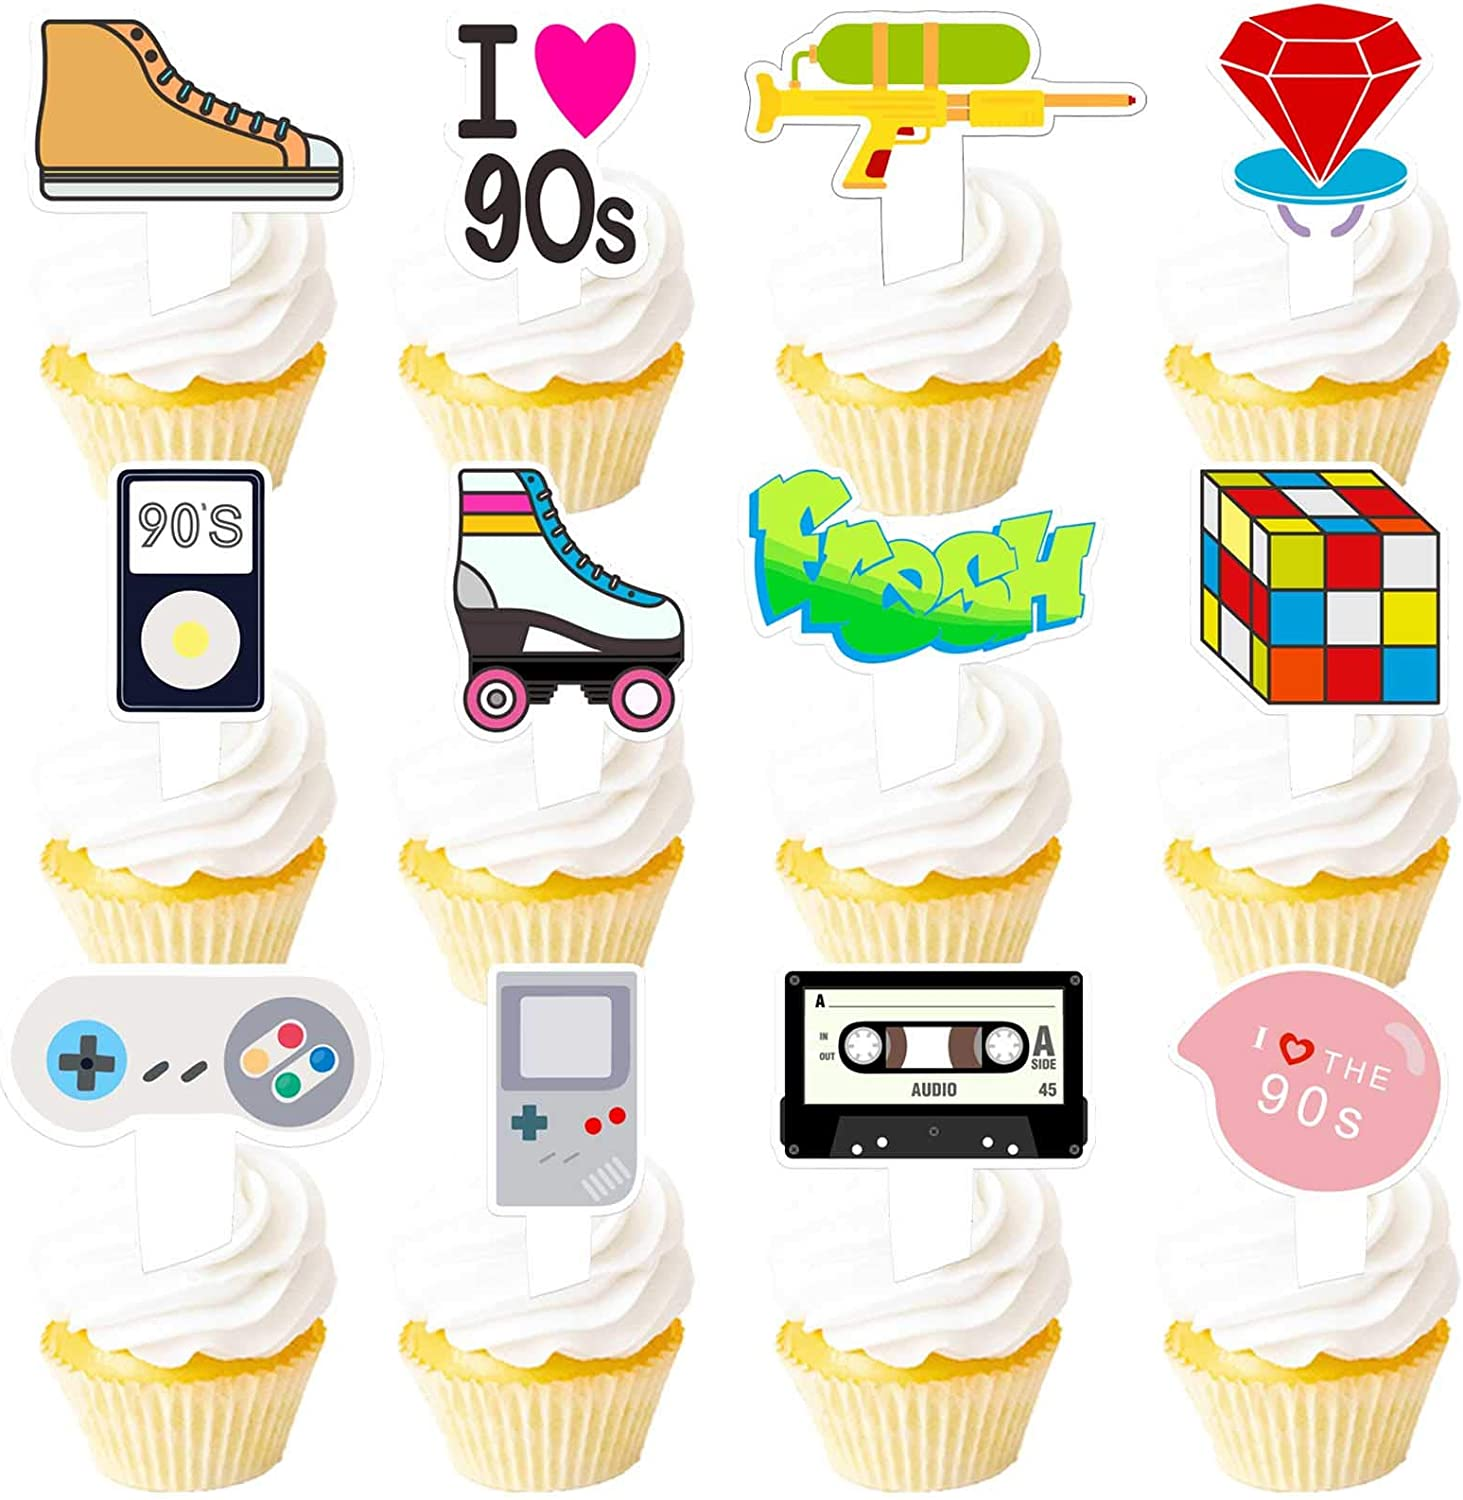 90s Cupcake Topper 1990s Retro Theme Decor Picks for 90's Decade Throwback Party Decorations Supplies 24pcs